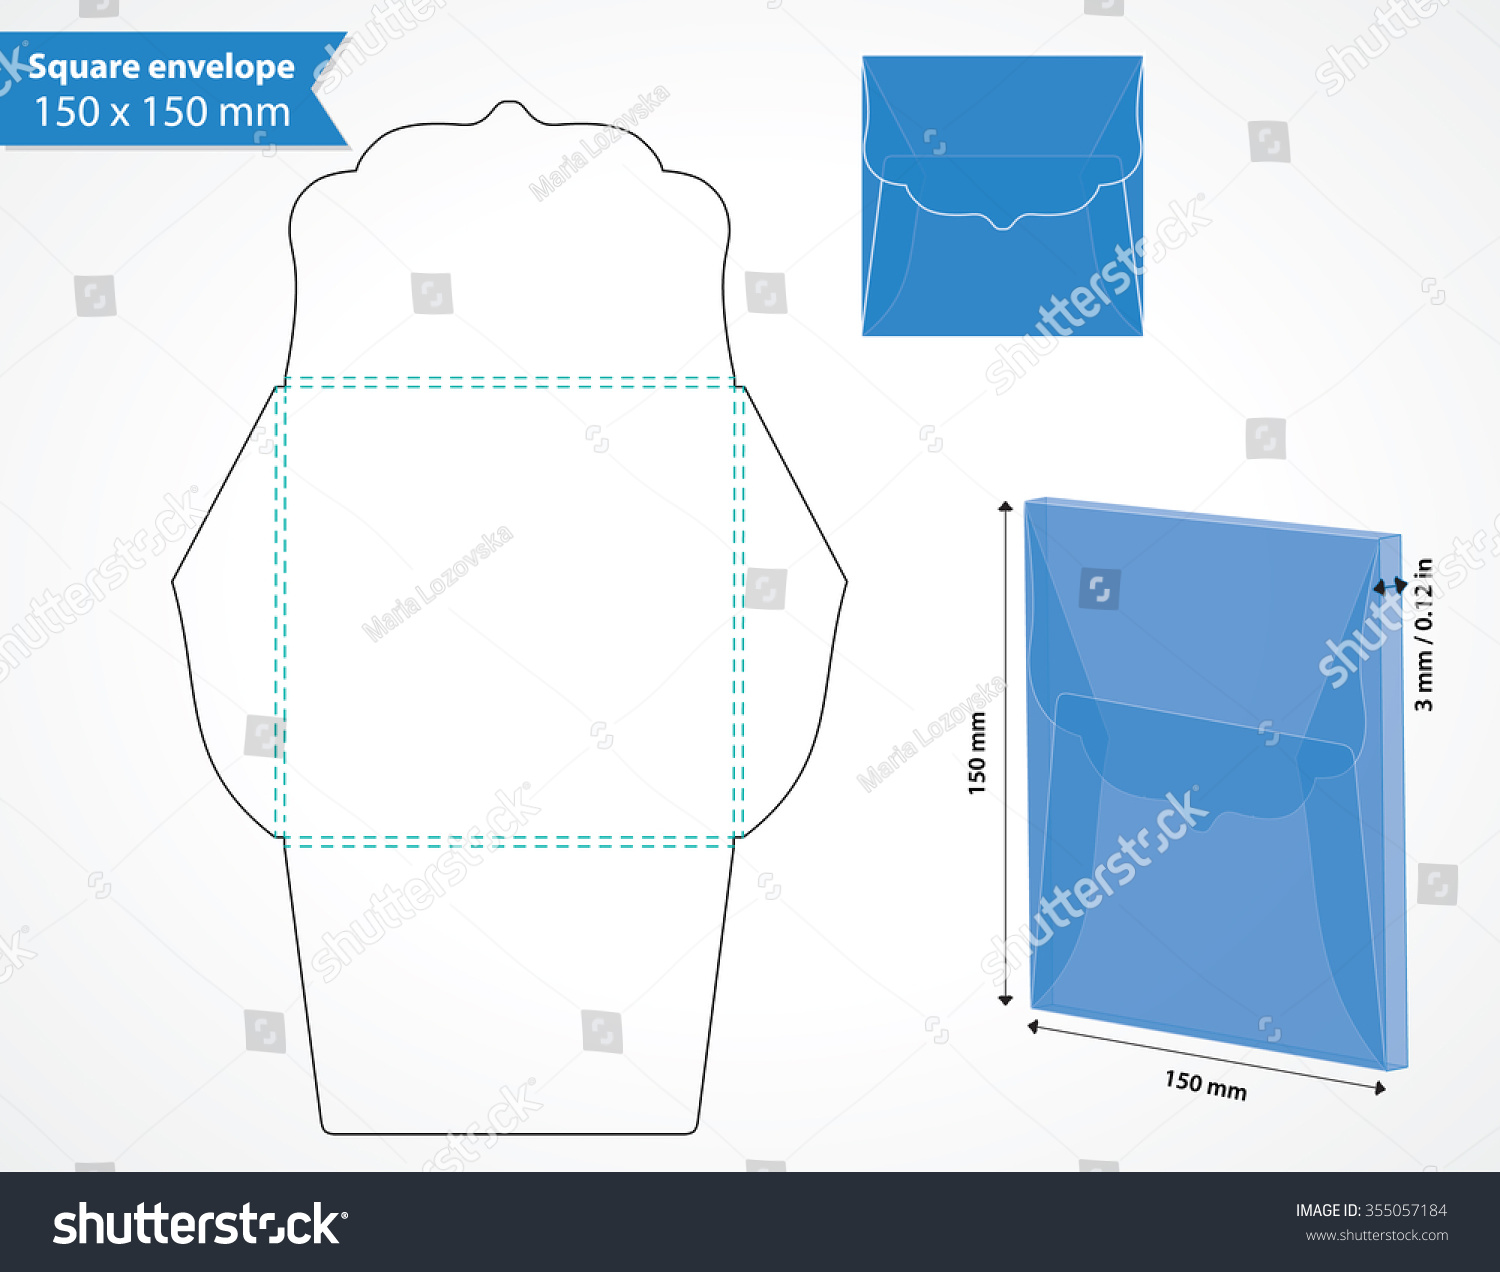 square envelope template die cut swirly stock vector 355057184 shutterstock. Black Bedroom Furniture Sets. Home Design Ideas